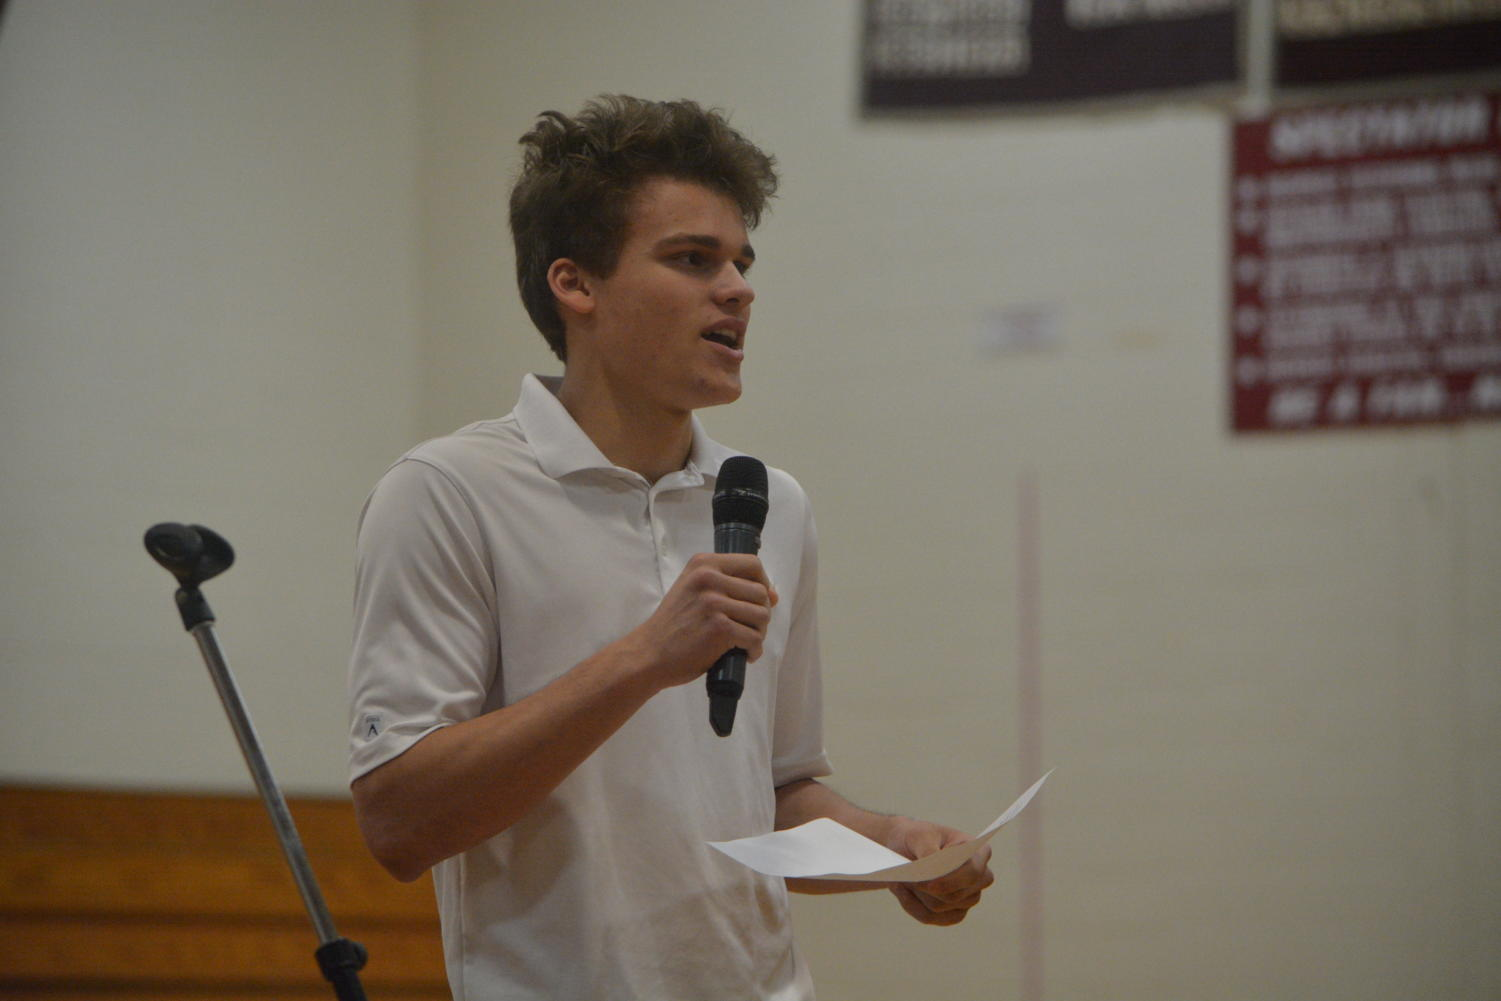 Go out and vote-- Sophomore Jacob Smith gives his election speech on May 24 to the Class of 2021. Smith was elected Class Secretary for the second consecutive year.